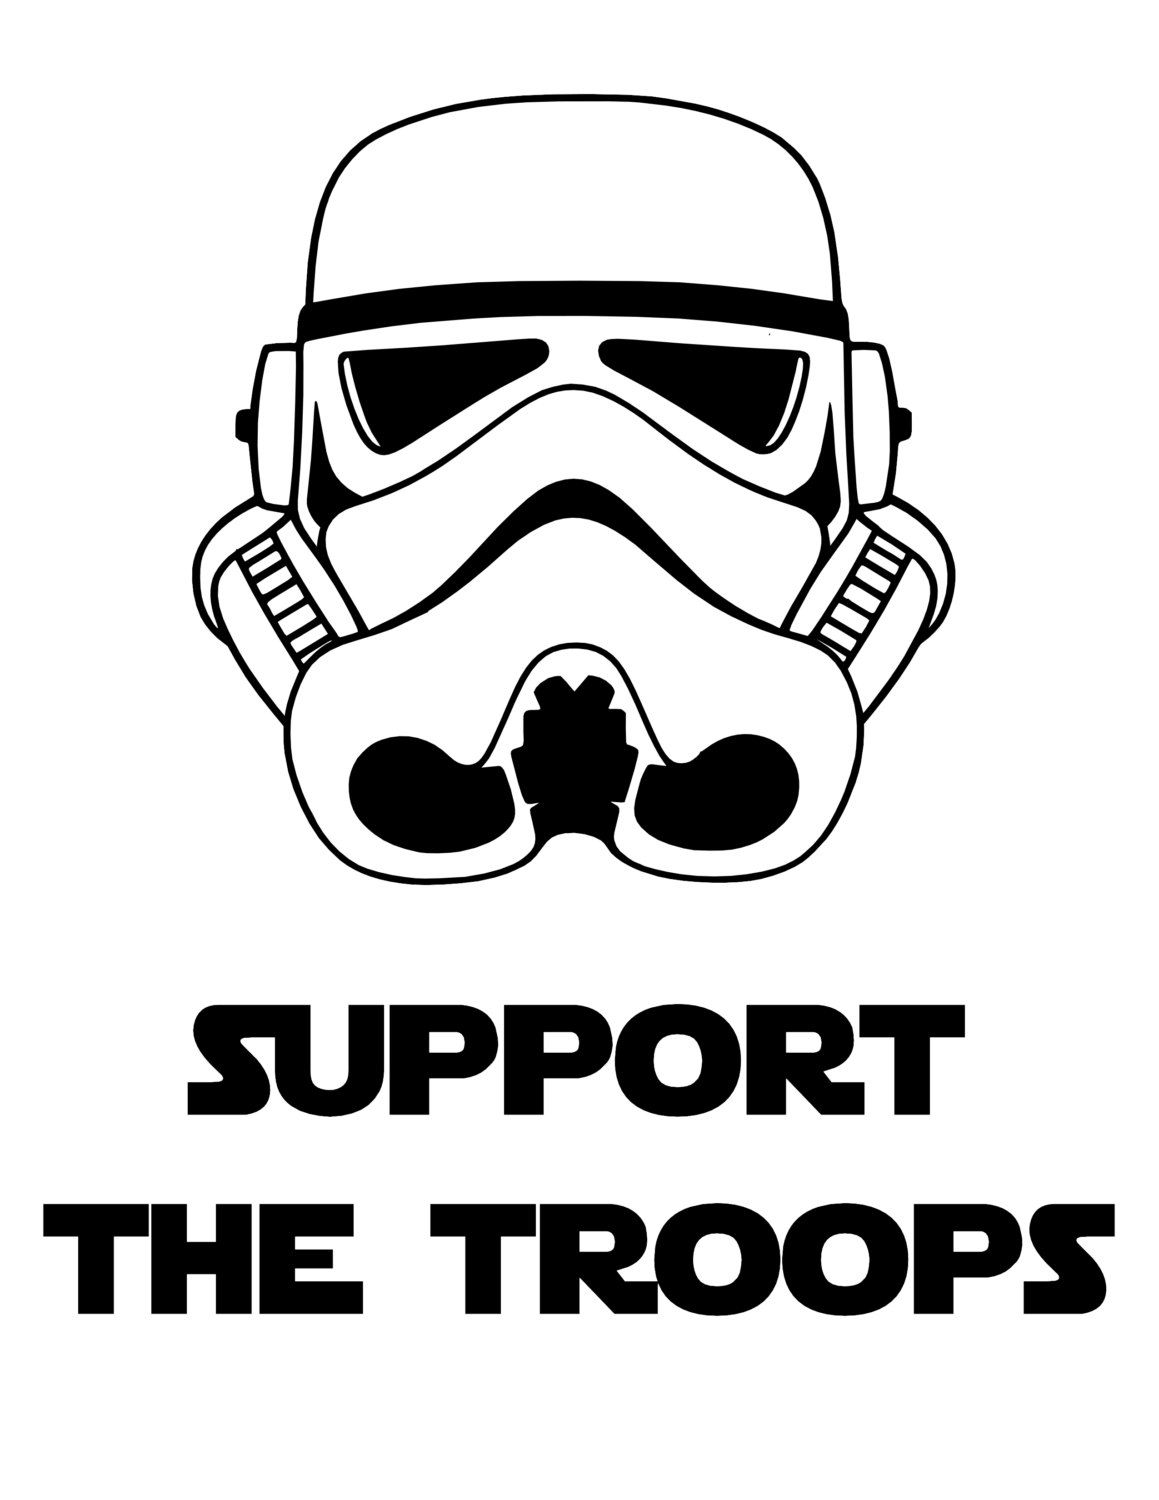 Support The Troops Storm Troopers Star Wars Printable Iron On T Shirt Transfer Digital Download